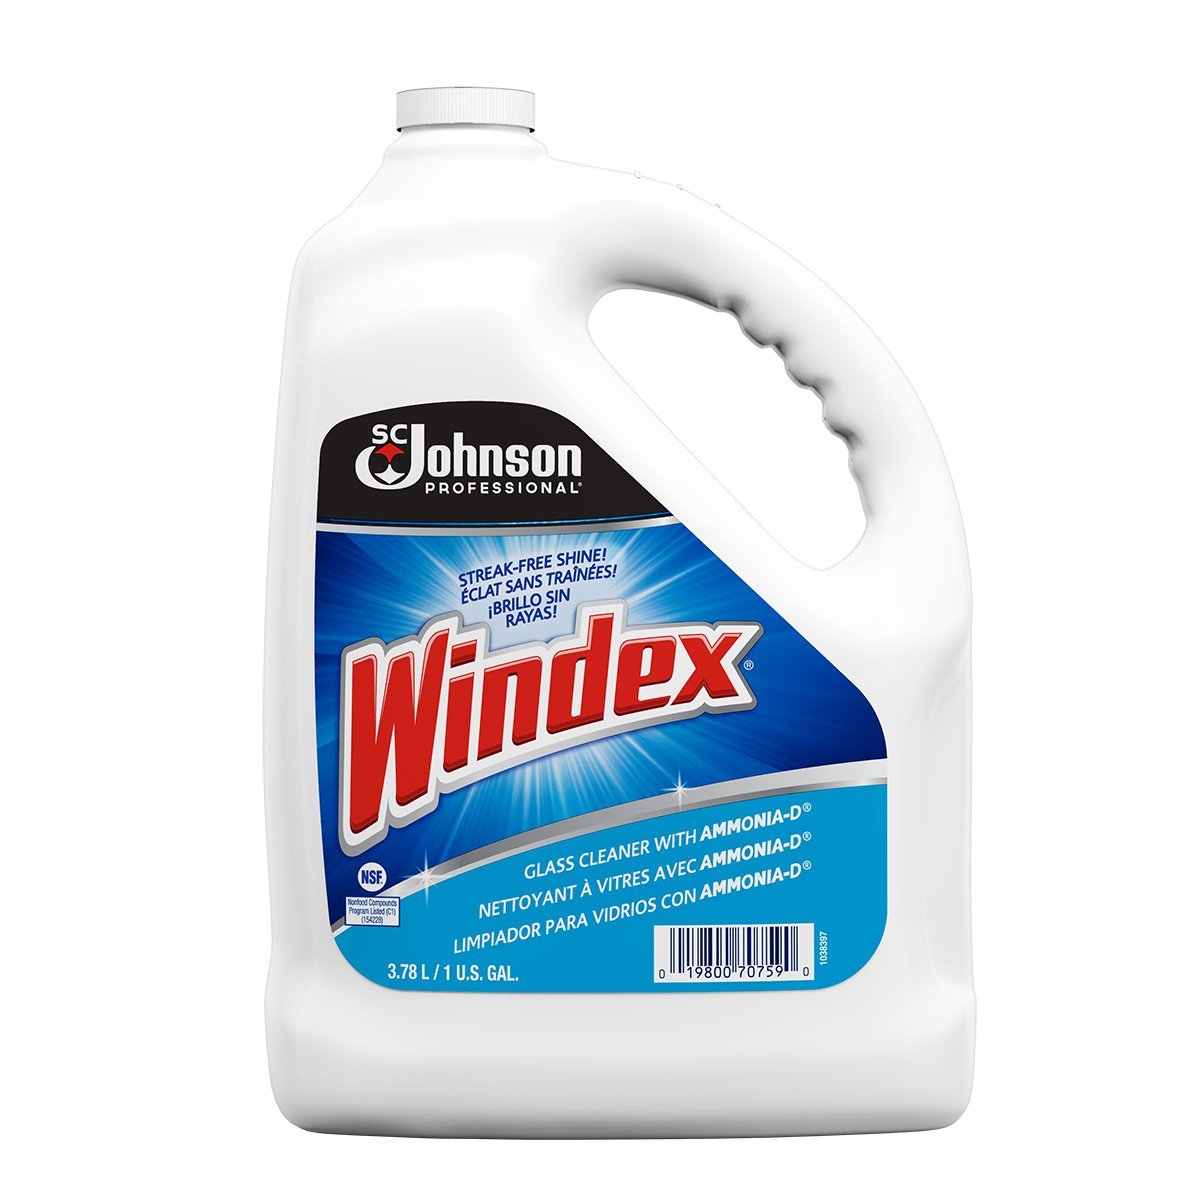 Windex PRO Glass Cleaner - 3.8L per bottle - 4/Case